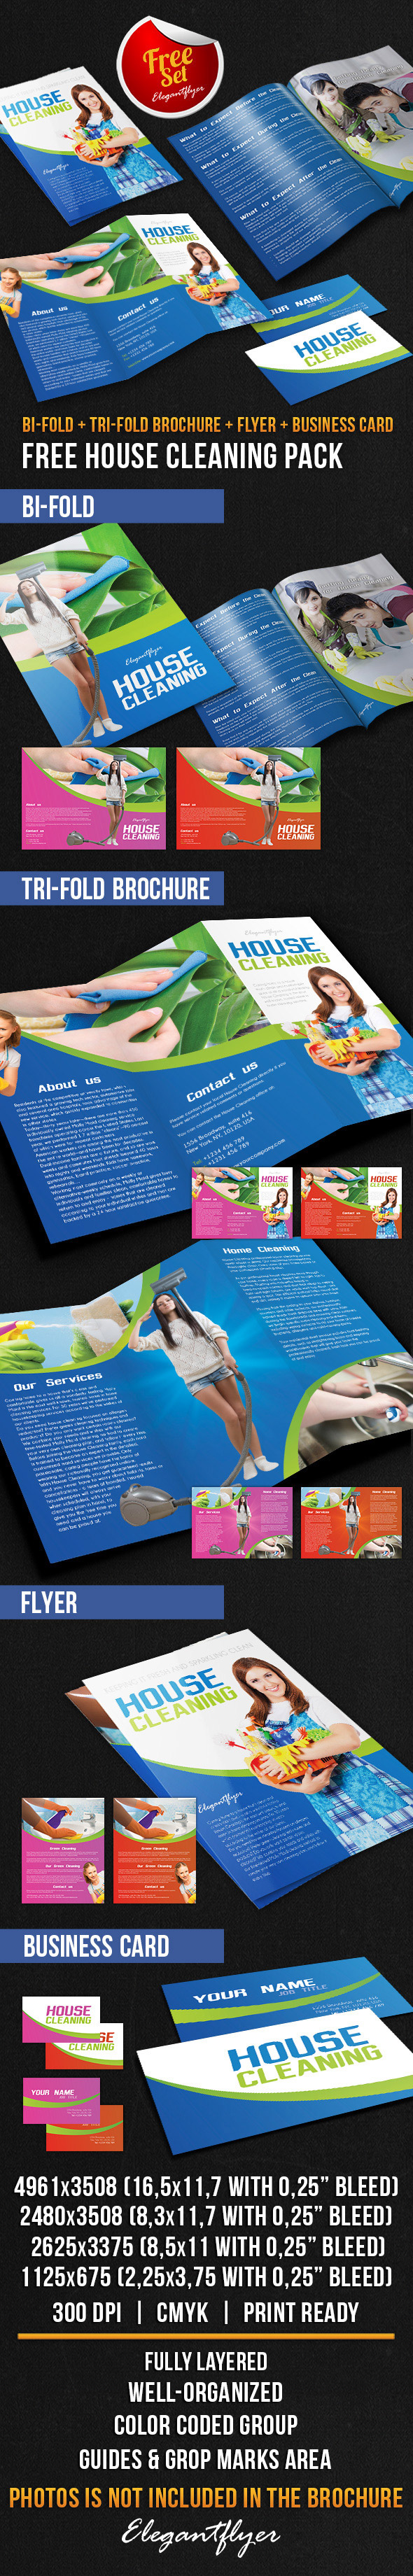 house cleaning brochure pack psd template on behance